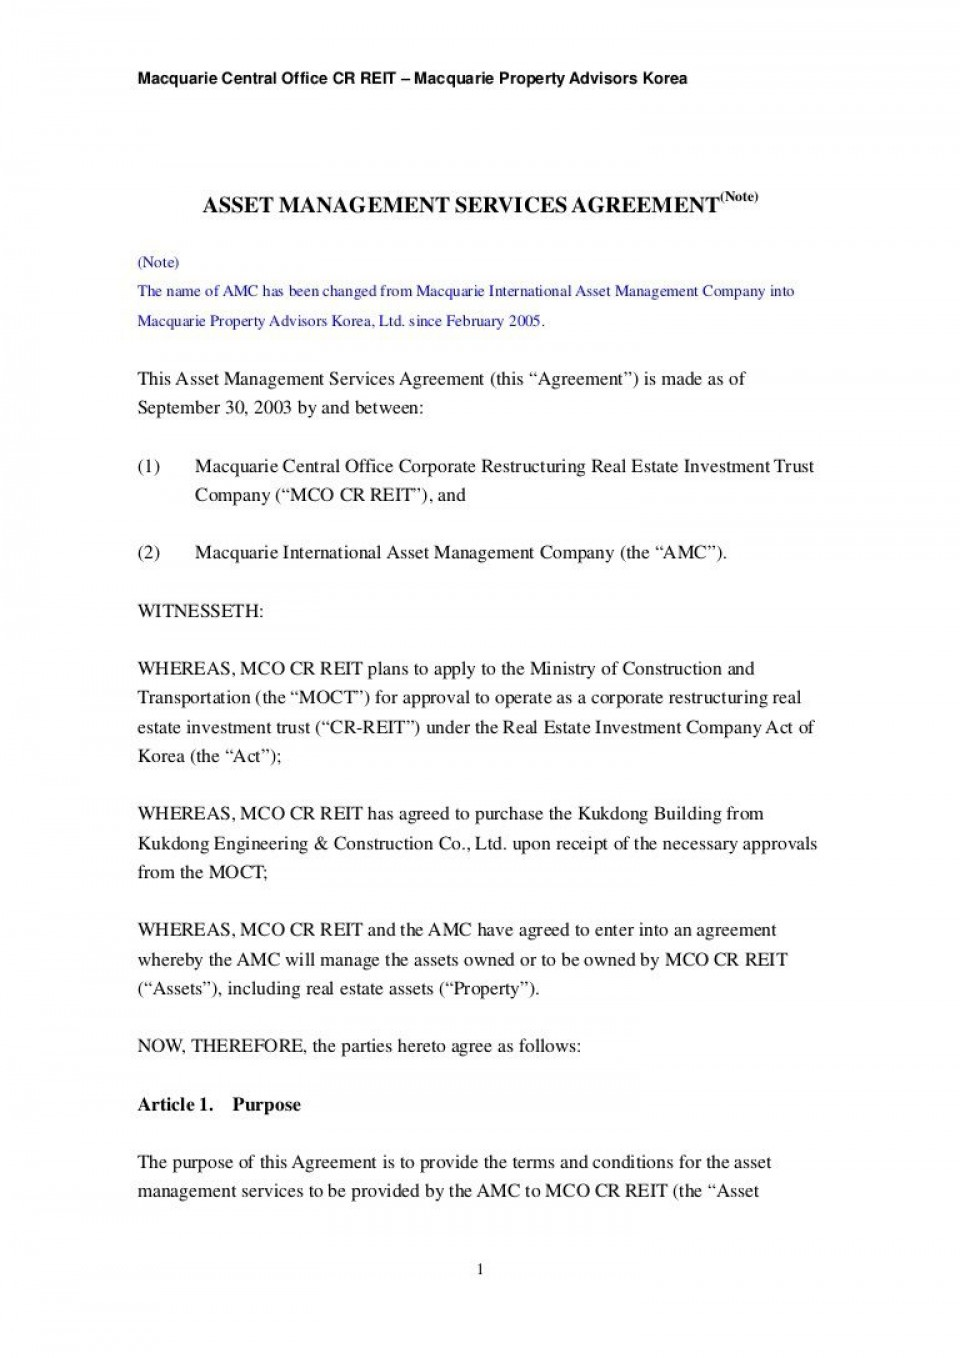 002 Archaicawful Property Management Contract Sample Highest Clarity  Agreement Template Pdf Company Free Uk960